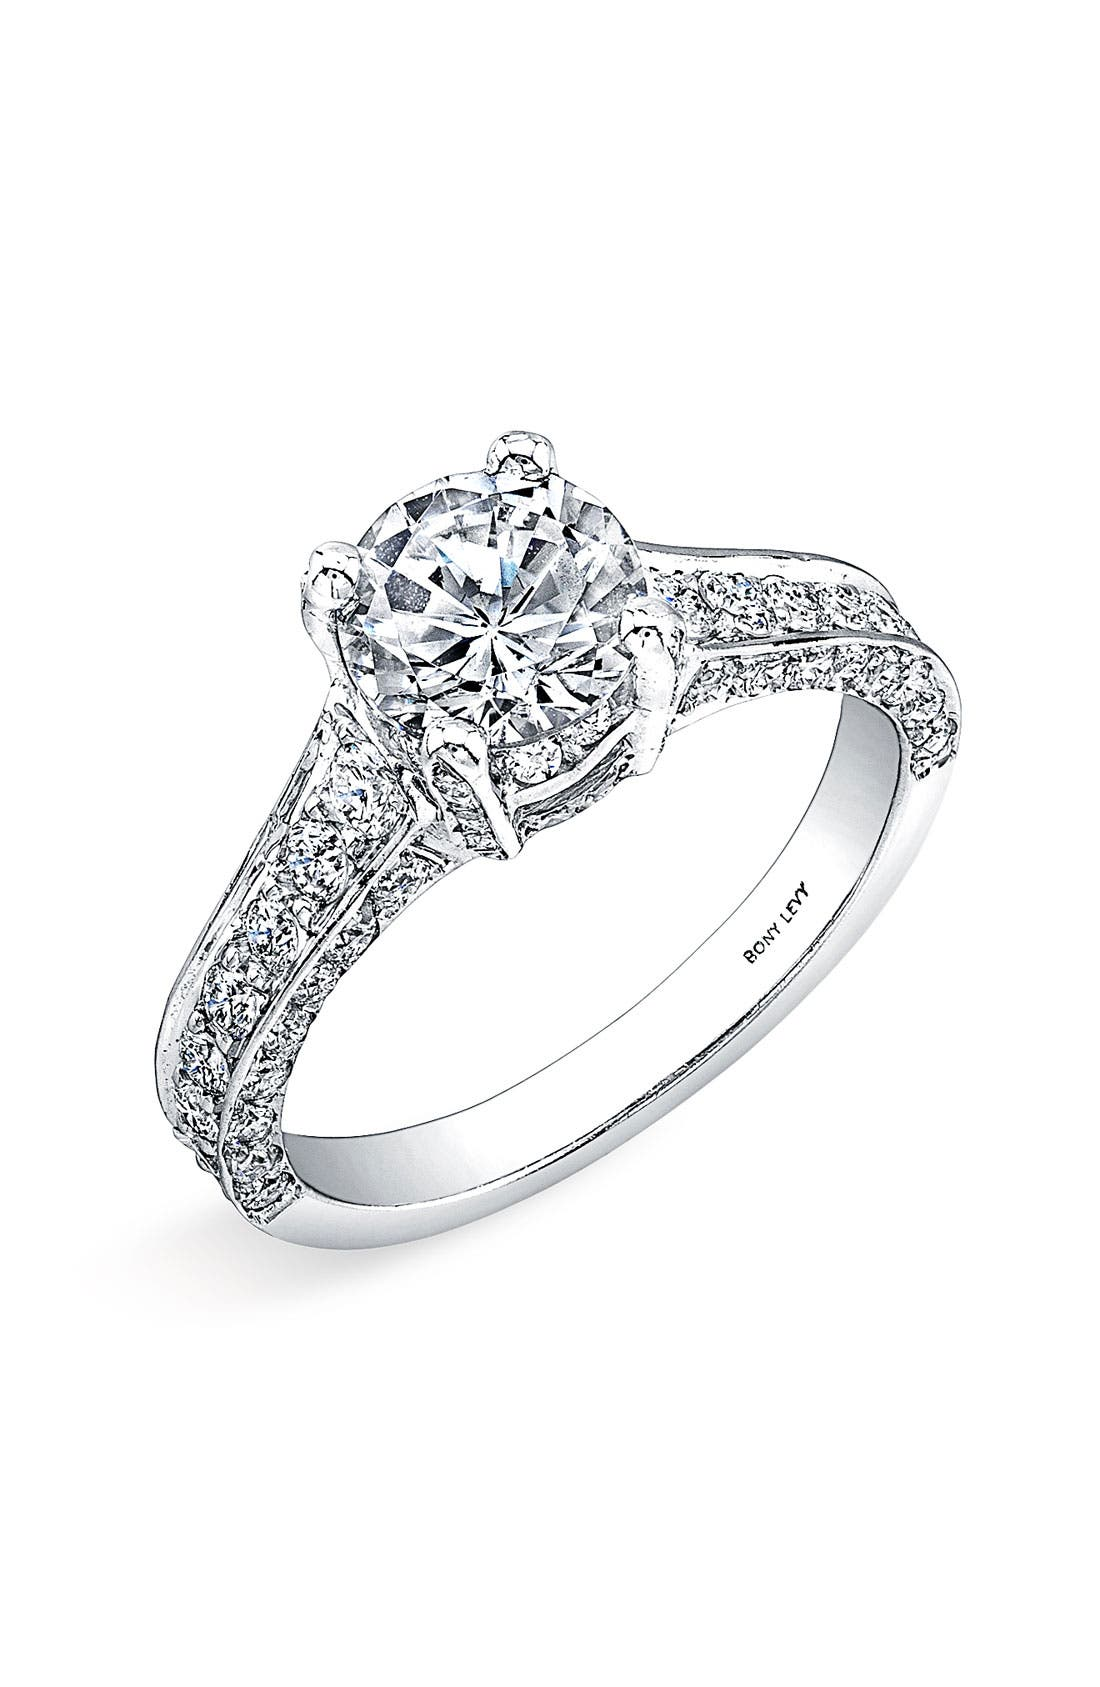 Main Image - Bony Levy Pavé Diamond Encrusted Engagement Ring Setting (Nordstrom Exclusive)